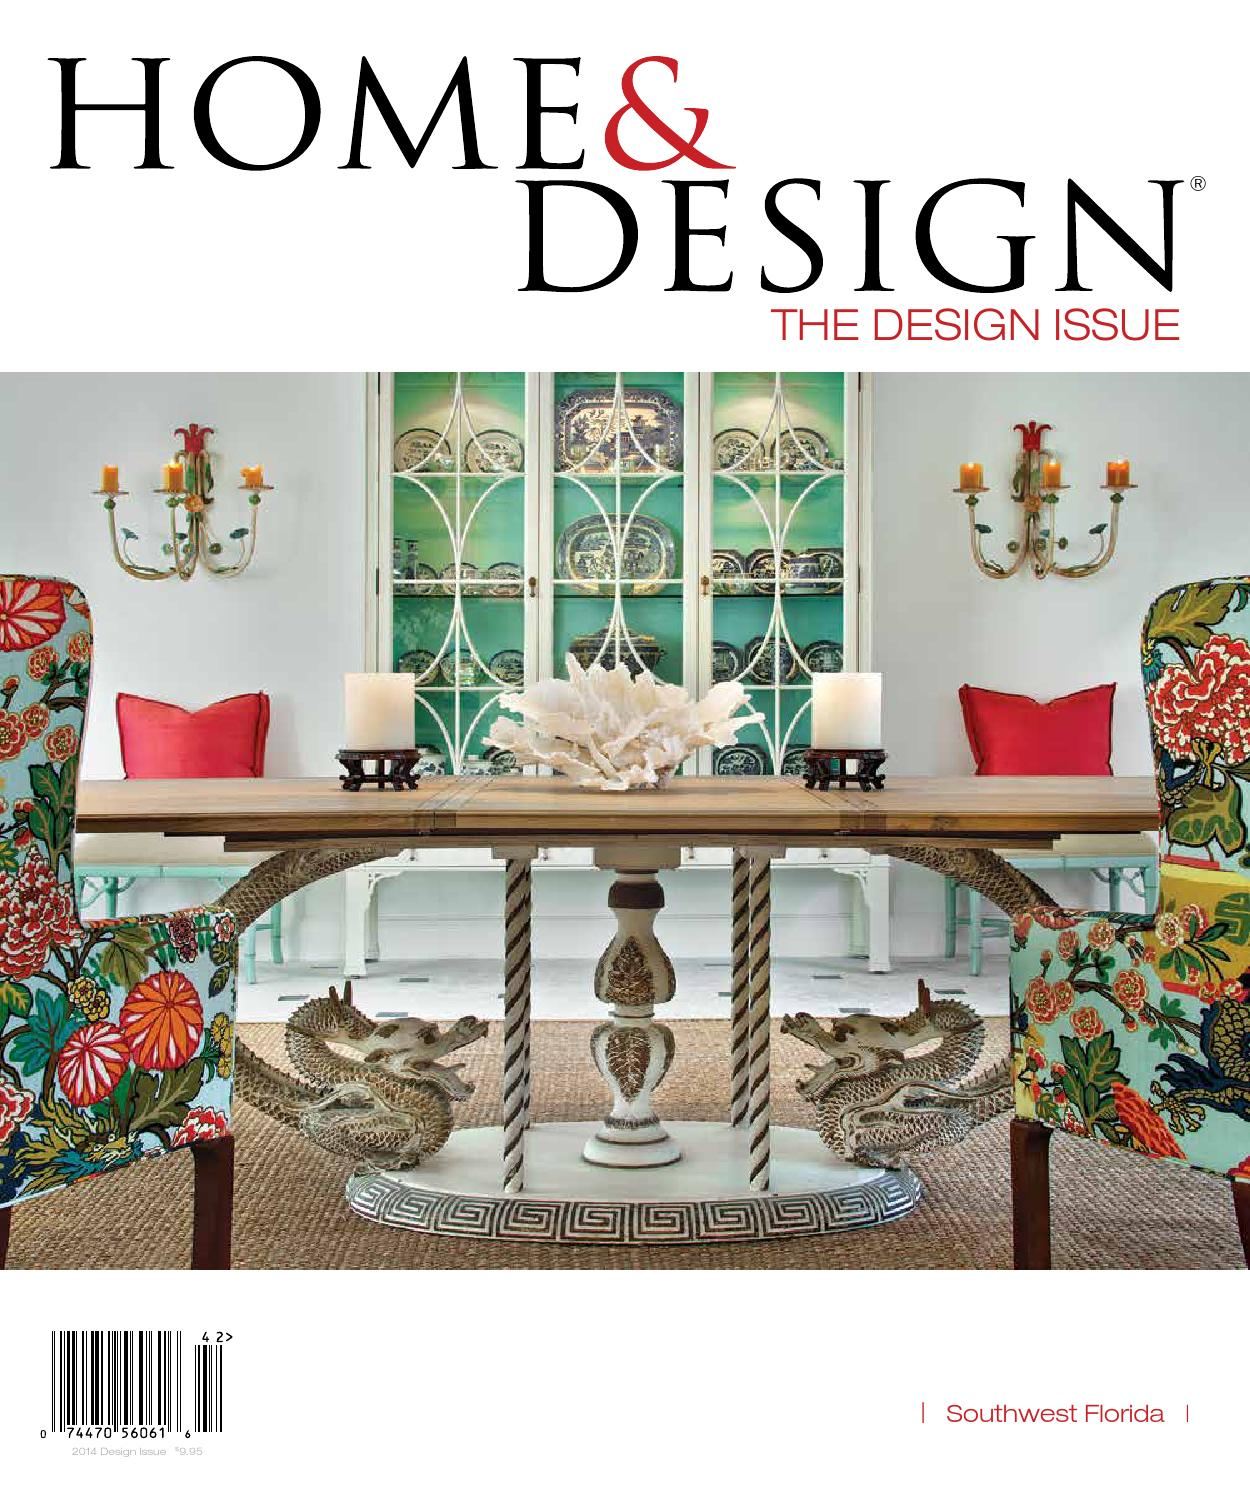 Home & Design Magazine | Design Issue 2014 | Southwest Florida ...